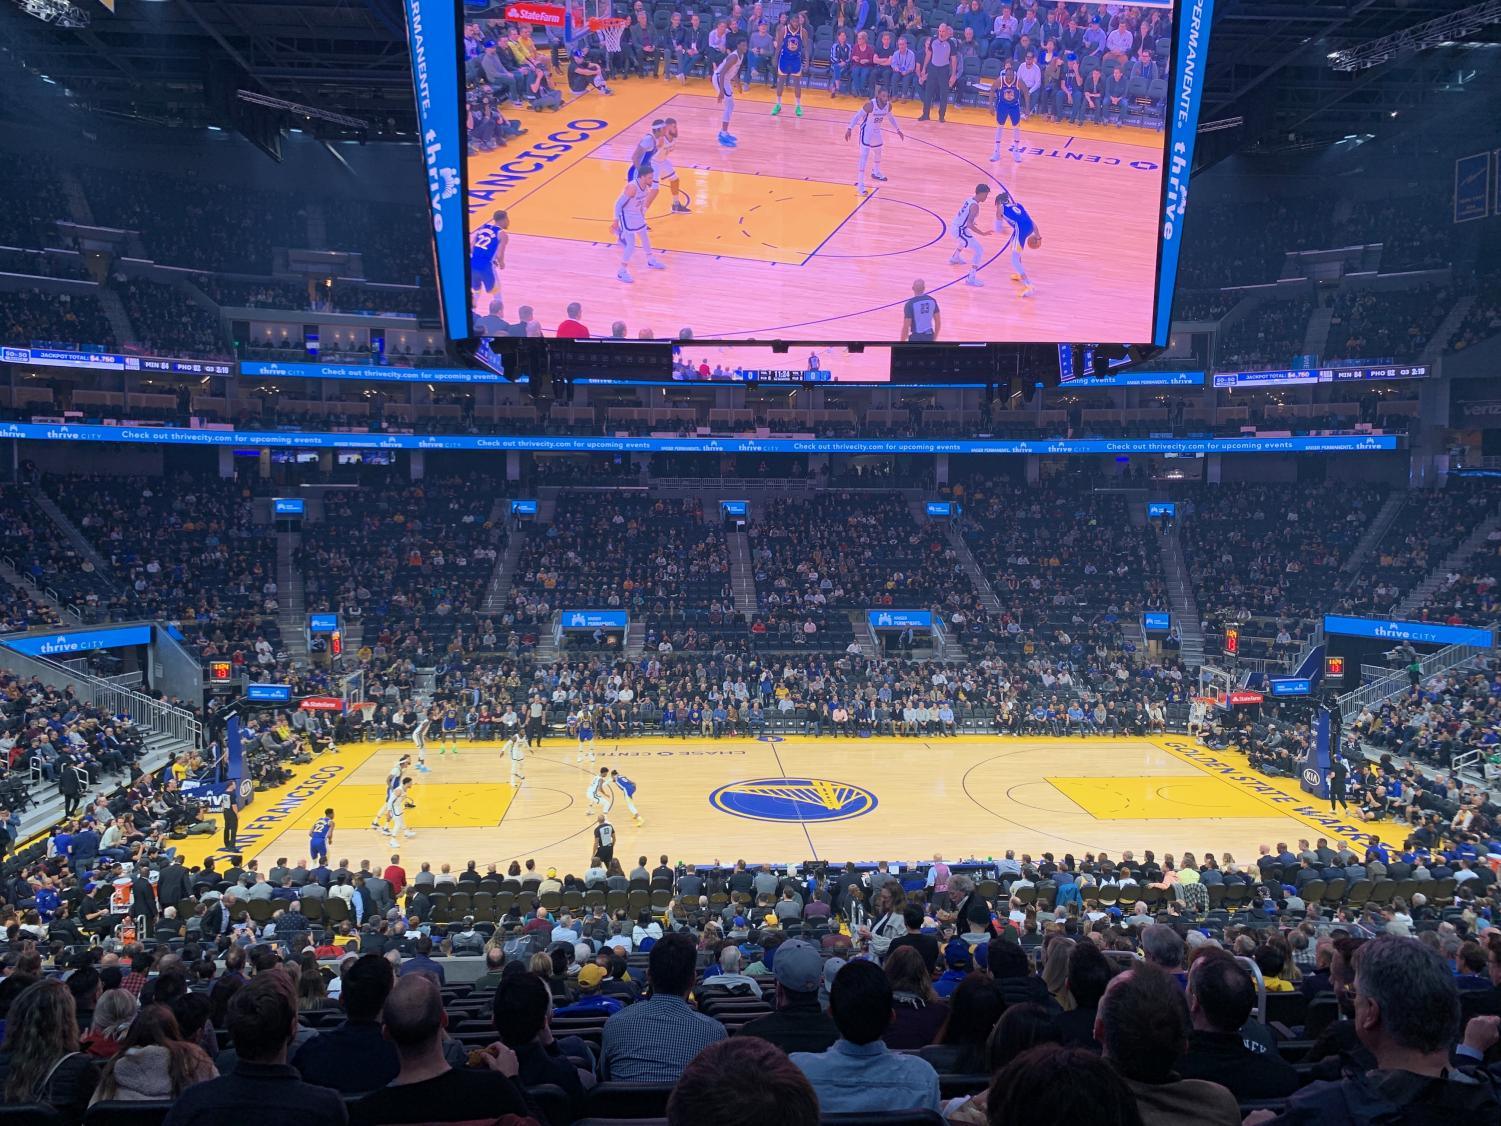 The Golden State Warriors play the Memphis Grizzlies at Chase Center on Dec. 9. The new arena in Mission Bay can seat over 18,000 people each game.